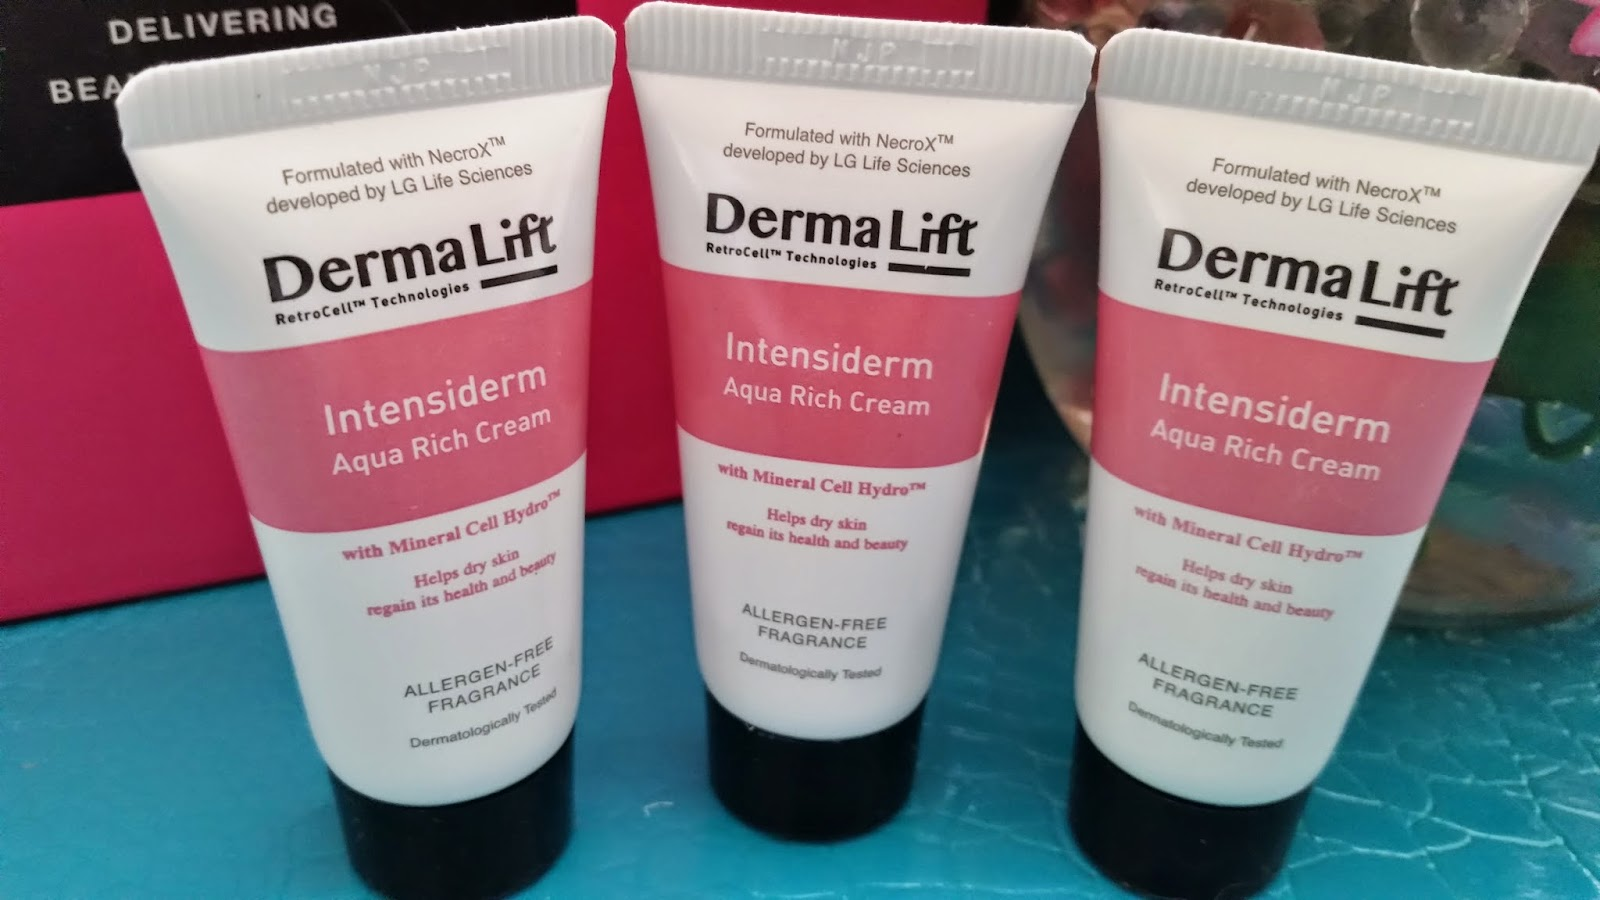 Derma Lift Intensiderm Aqua Rich Cream